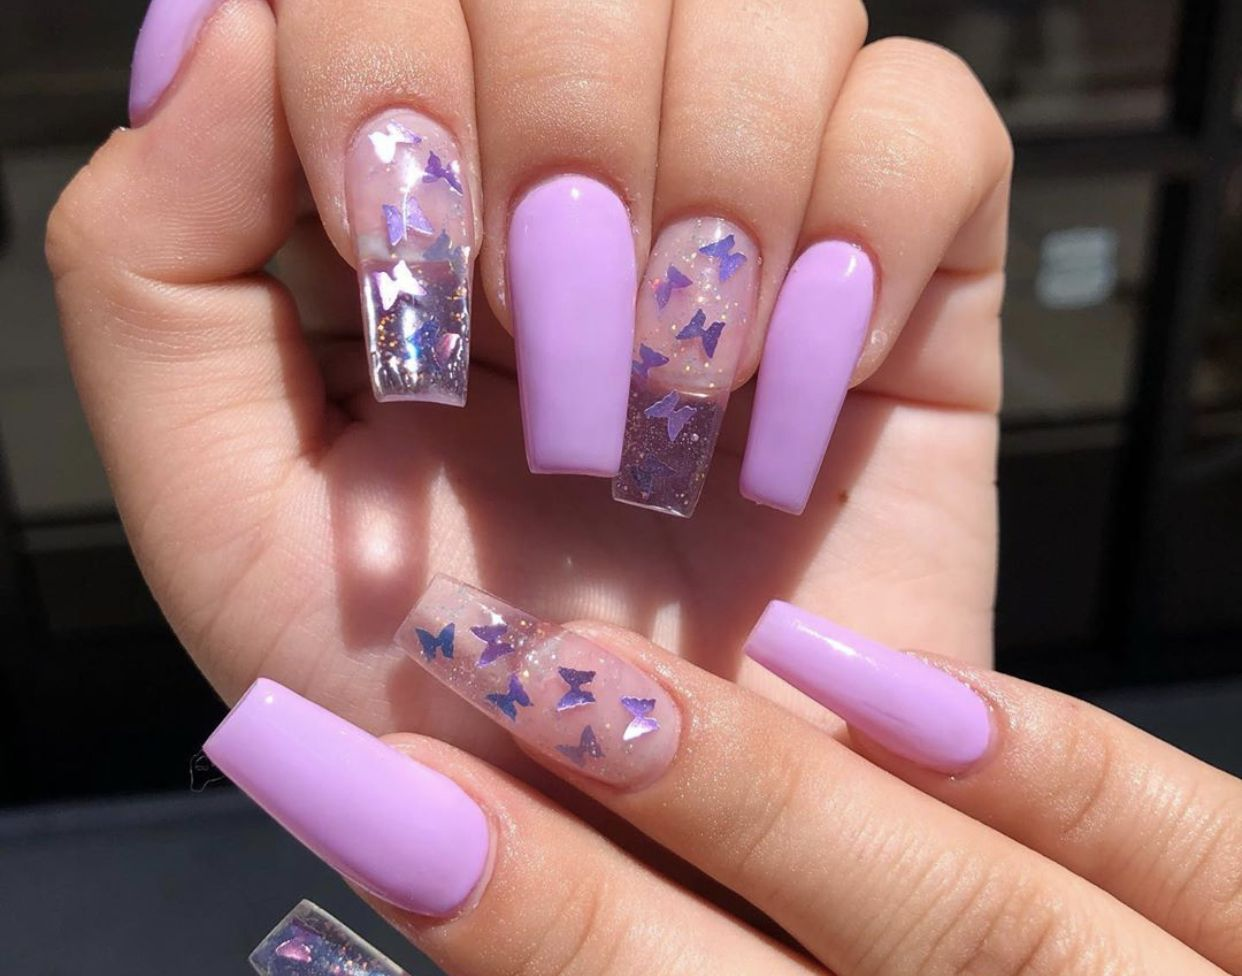 Pin By Jackie On Nails Toes Purple Acrylic Nails Summer Acrylic Nails Clear Acrylic Nails